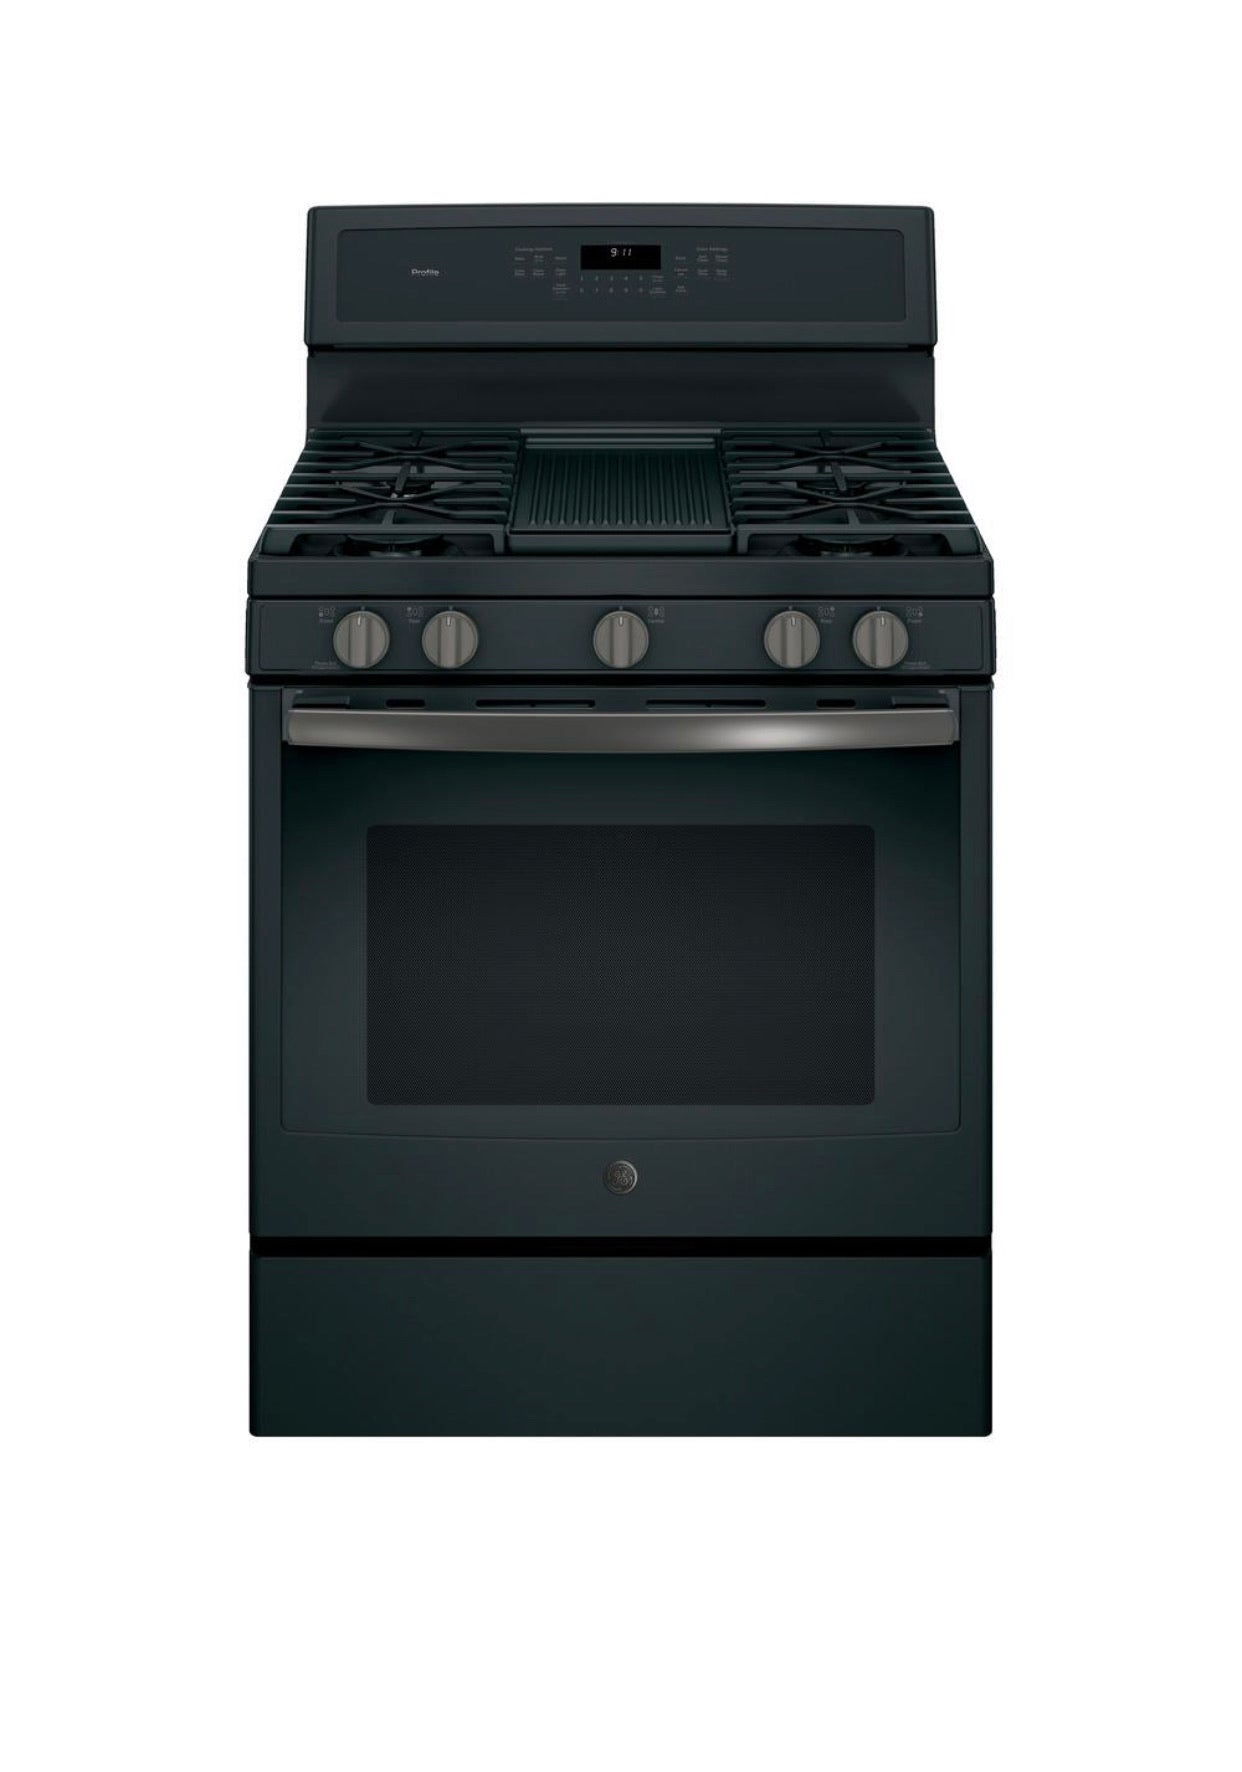 GE Profile 30 in. 5.6 cu. ft. Gas Range with Self-Cleaning Convection Oven in Black Slate, Fingerprint Resistant Model PGB911BEJ1TS